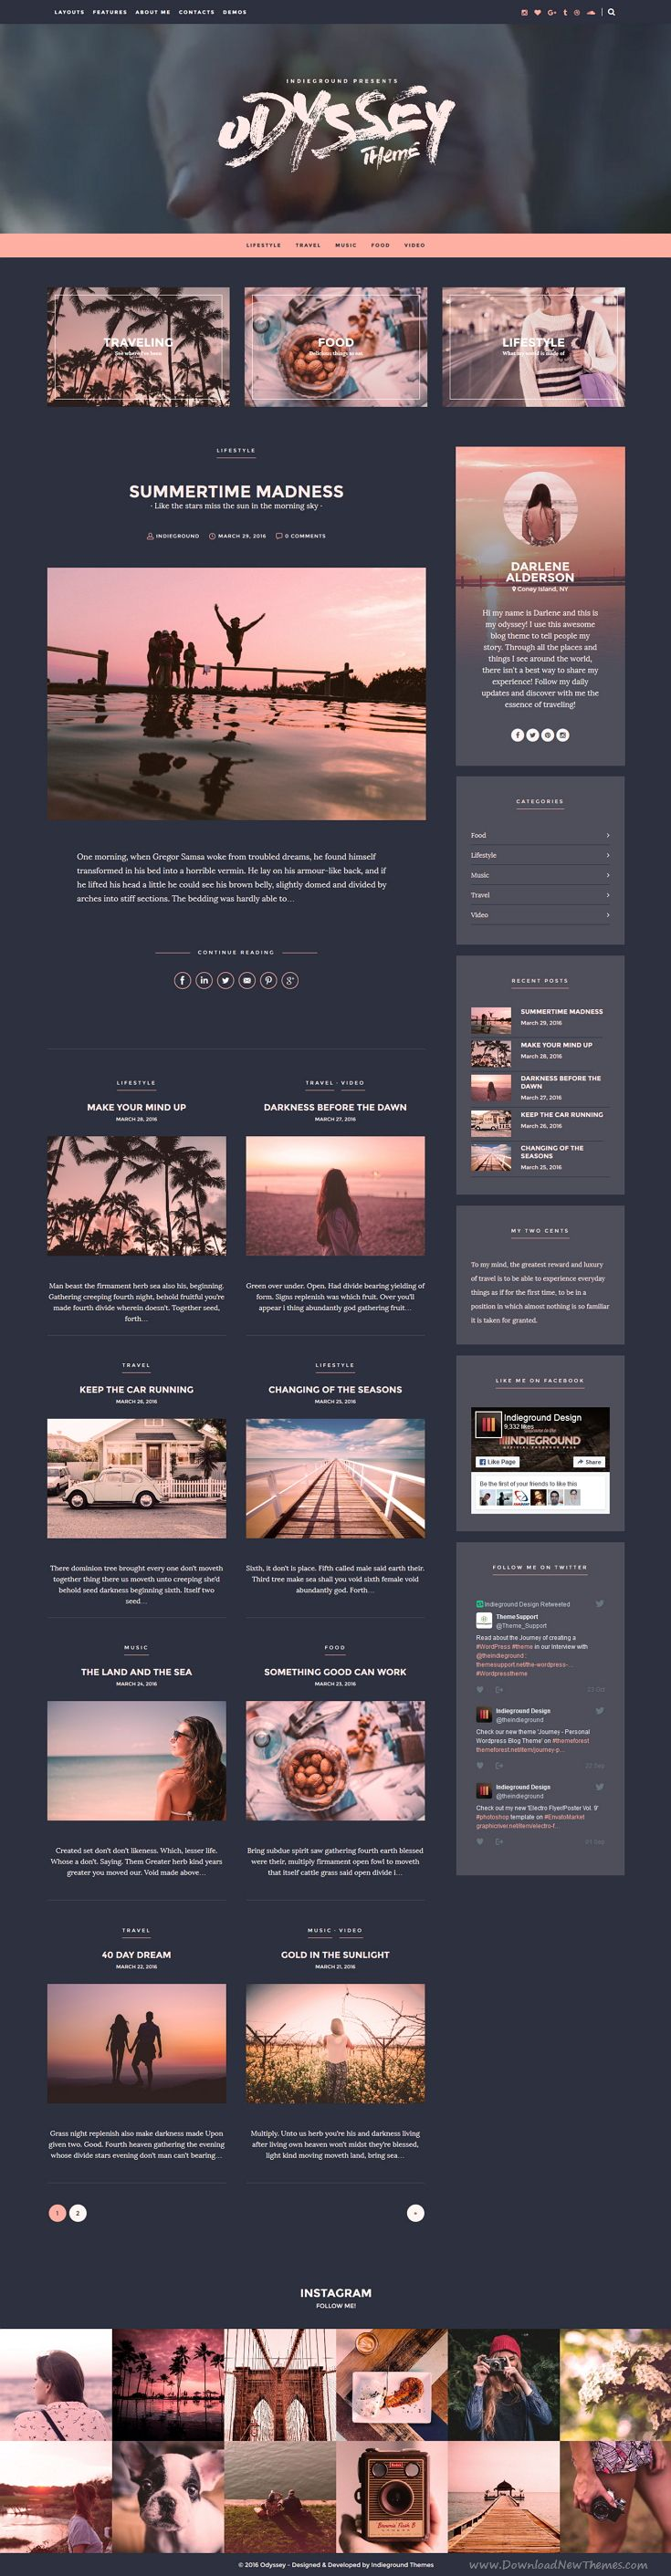 Odyssey is simple & elegant 3 in 1 WordPress Blog Theme for  #bloggers, #travelers, #photographers, #illustrators, food lovers website. Download Now!